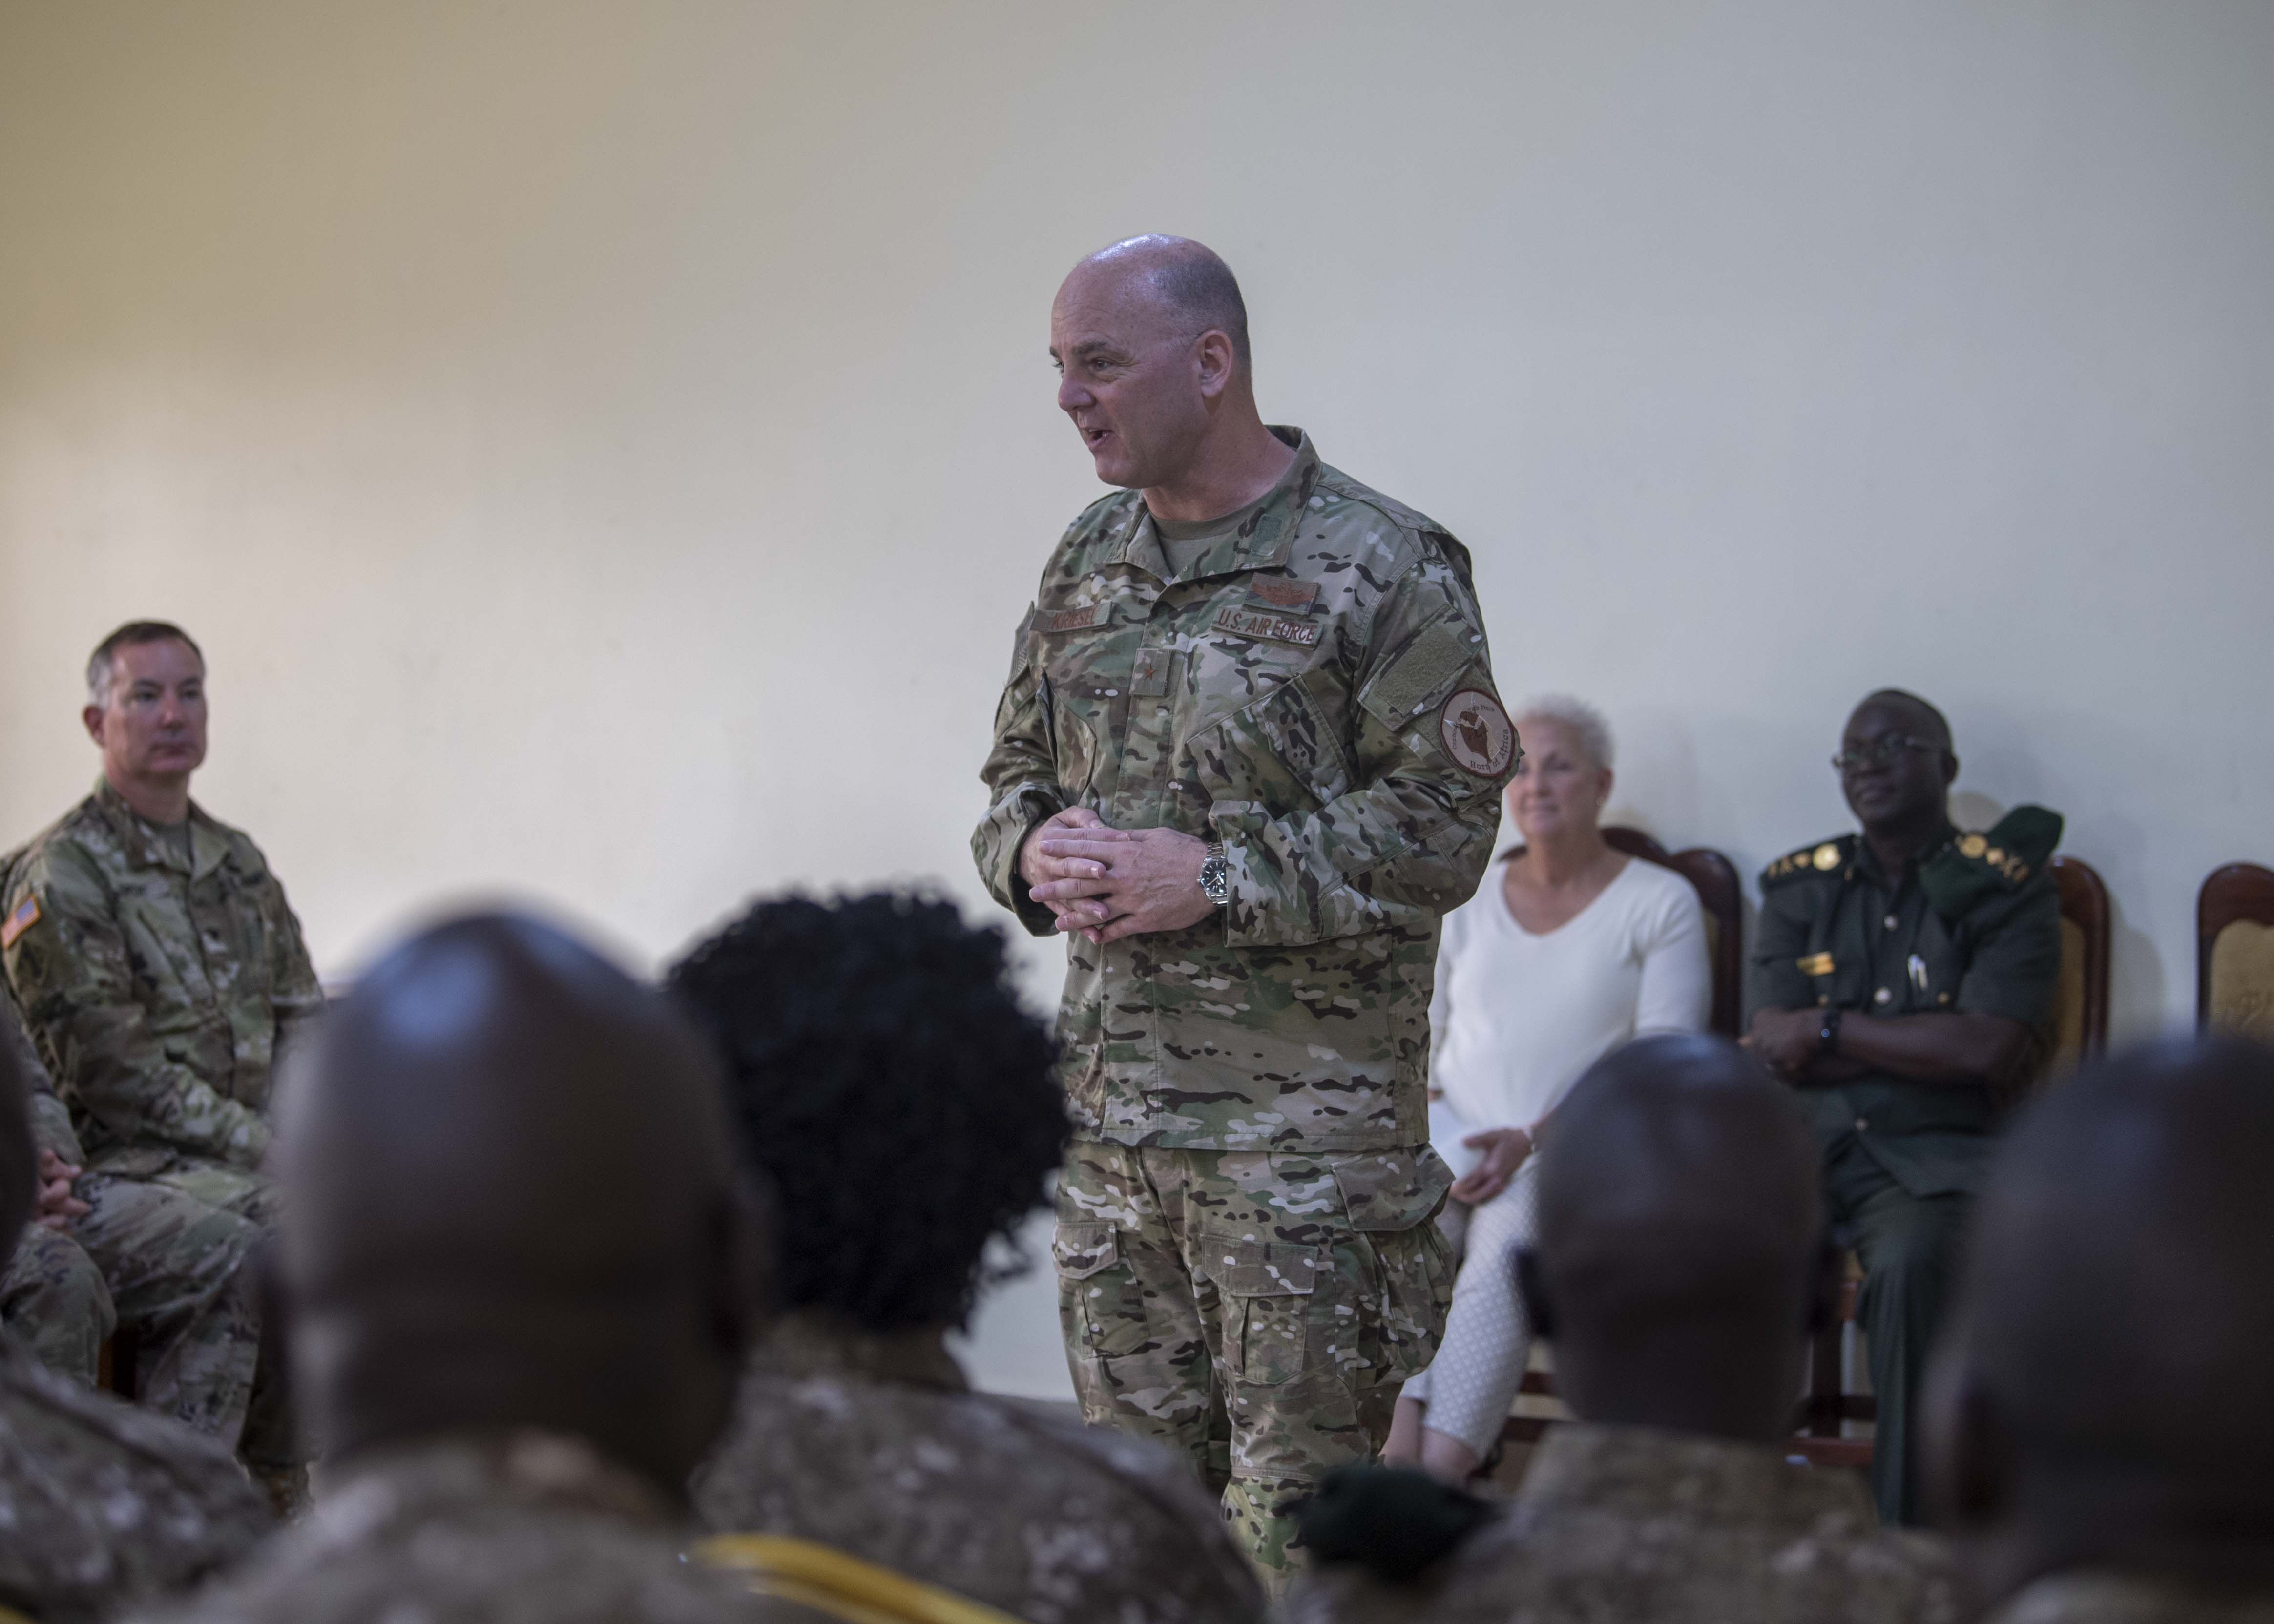 U.S. Air Force Brig. Gen. James R. Kriesel, deputy commanding general of Combined Joint Task Force-Horn of Africa (CJTF-HOA), provides remarks to the Uganda Wildlife Authority (UWA) Ranger graduates during a Counter Illicit Trafficking Junior Leadership Course graduation at Queen Elizabeth Park, Uganda, Oct. 10, 2019. Twenty-five UWA Rangers graduated the course. (U.S. Air Force photo by Staff Sgt. J.D. Strong II)